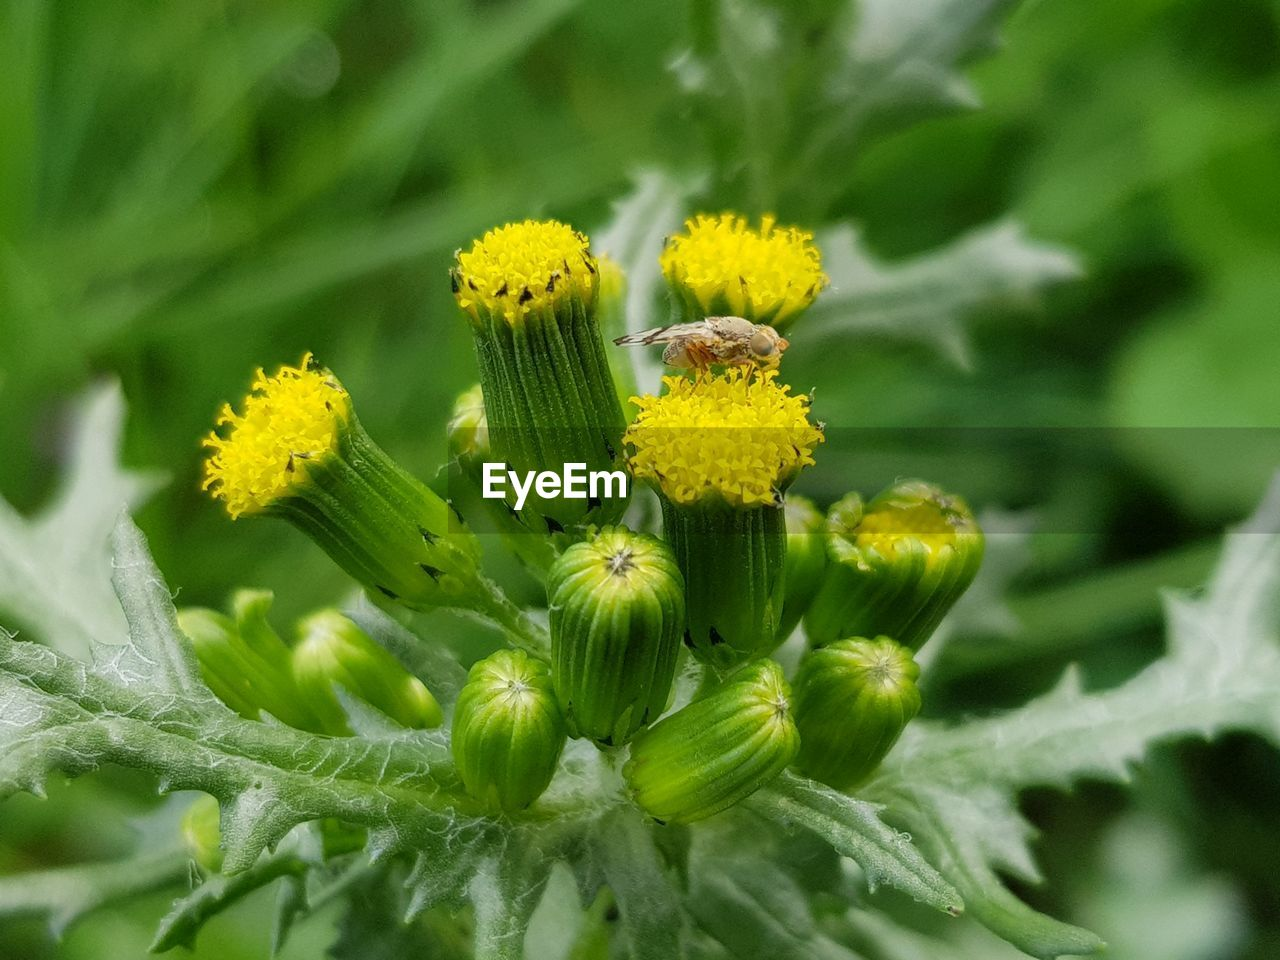 flower, flowering plant, plant, fragility, growth, vulnerability, beauty in nature, freshness, green color, yellow, flower head, close-up, inflorescence, petal, nature, no people, day, selective focus, bud, plant part, outdoors, sepal